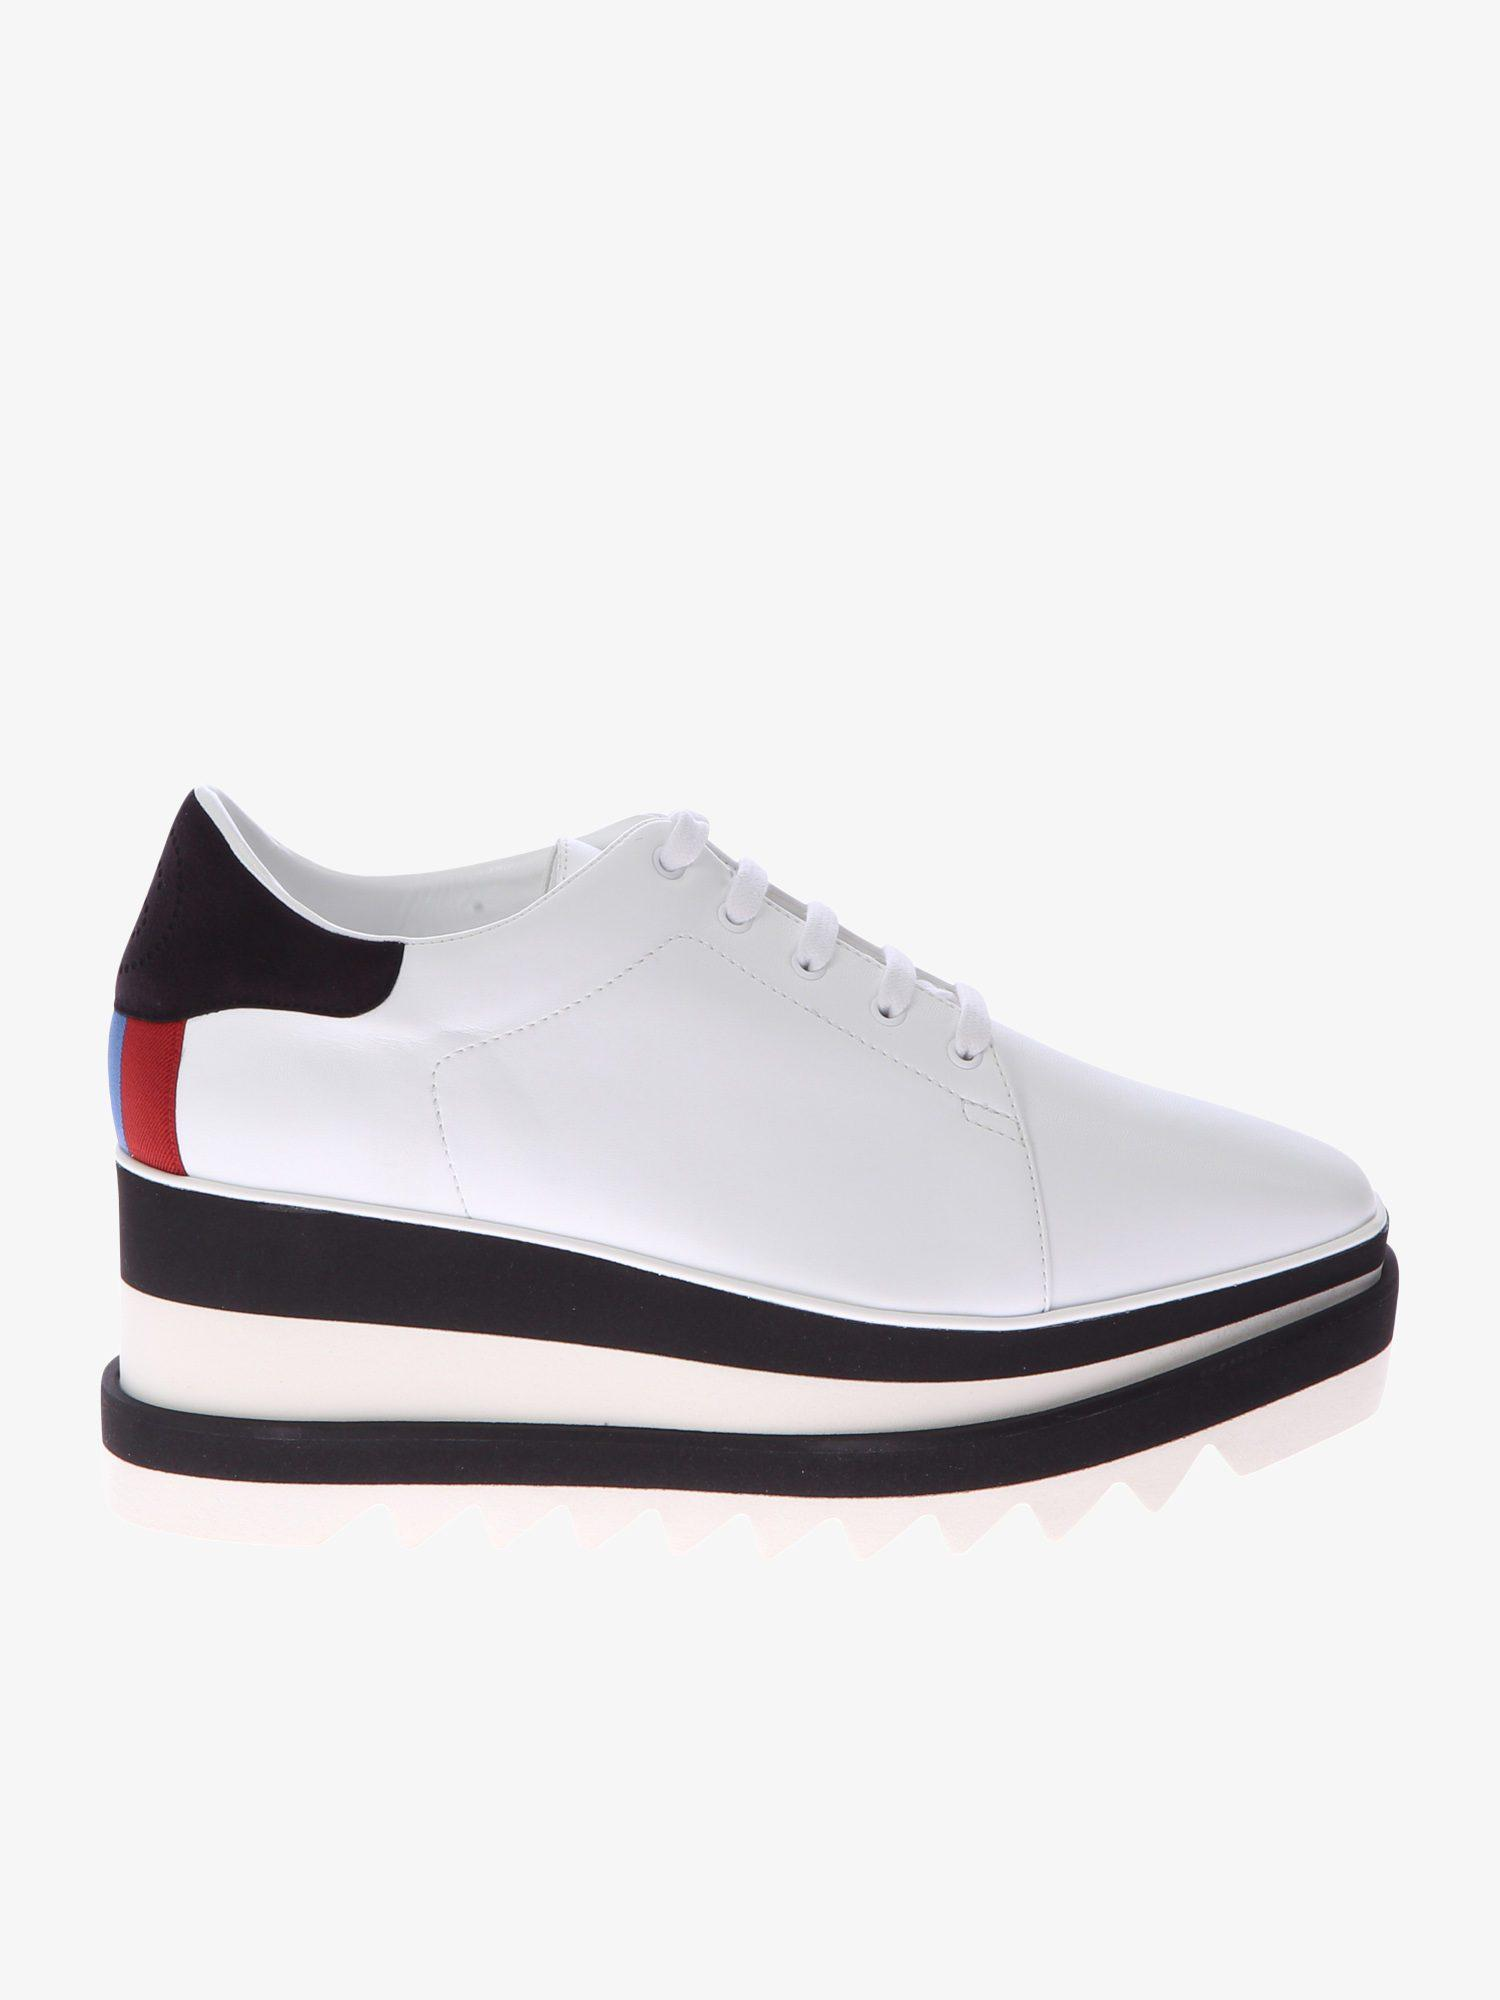 93bad3711f2 Lyst - Stella Mccartney Faux Leather Sneakers in White for Men ...